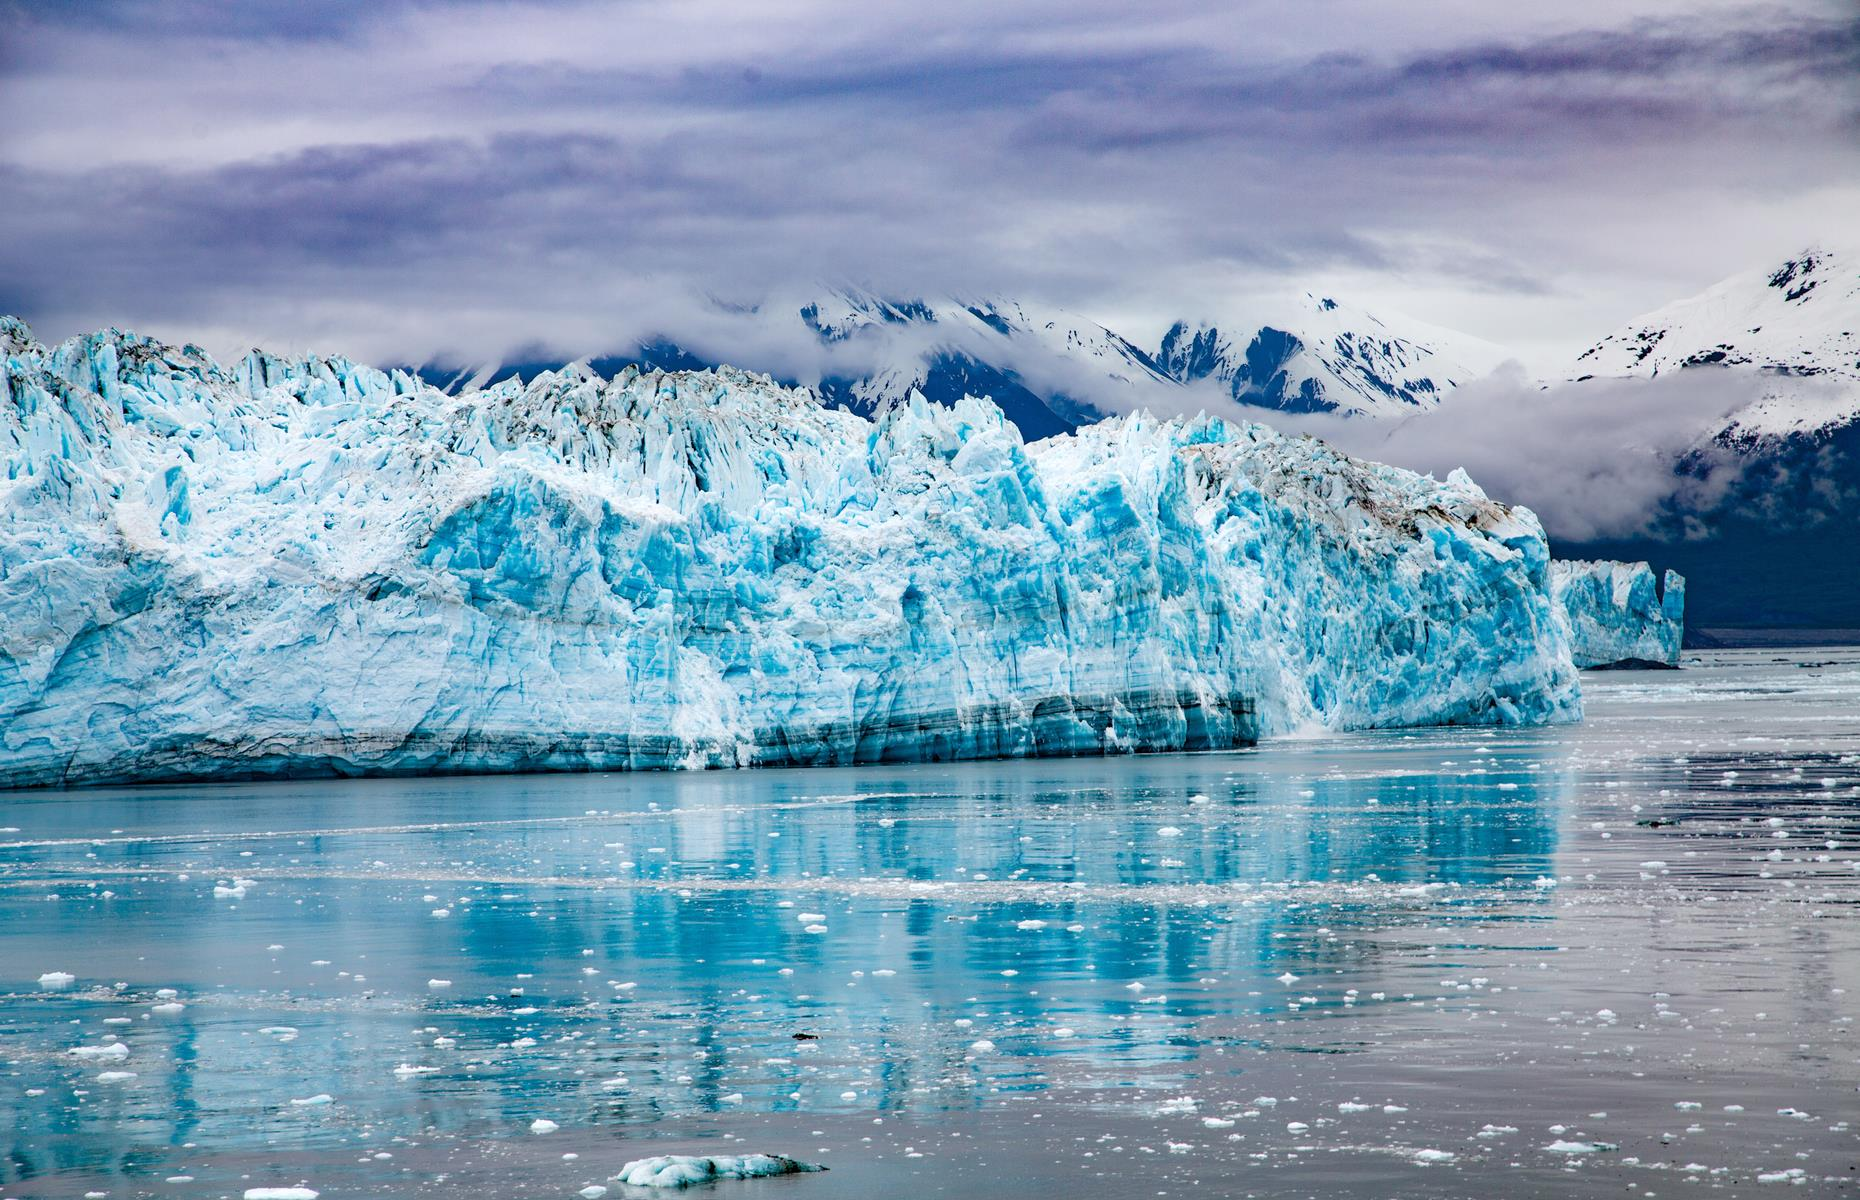 "Slide 47 of 61: The Hubbard Glacier is one of Alaska's most impressive. It's situated in the eastern part of the state, off the coast of Yakutat, and is a gargantuan six miles-plus wide and 400-feet (122m) tall at its highest point. The blue-hued beast is well-known for being ""active"", slowly advancing through the gulf, rather than retreating like many other of the world's glaciers."